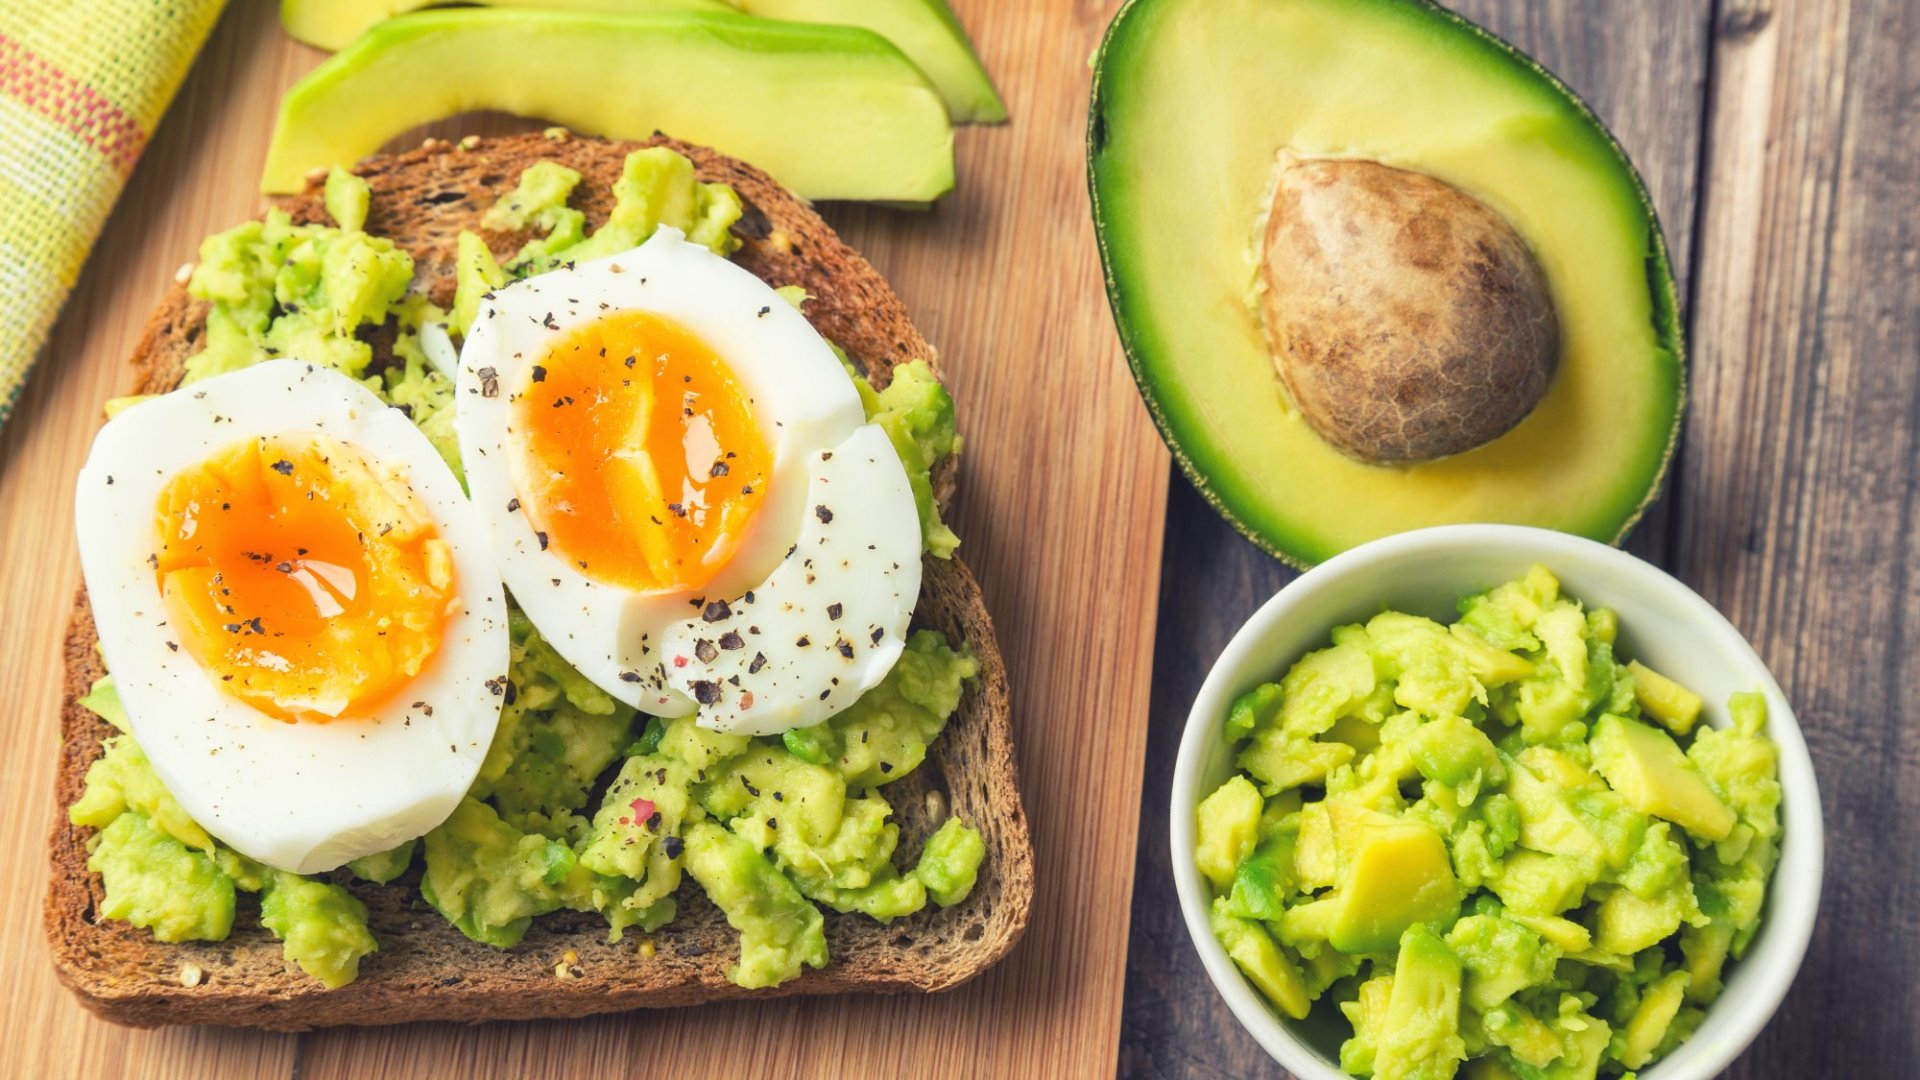 Why You Should Eat Breakfast Every Morning